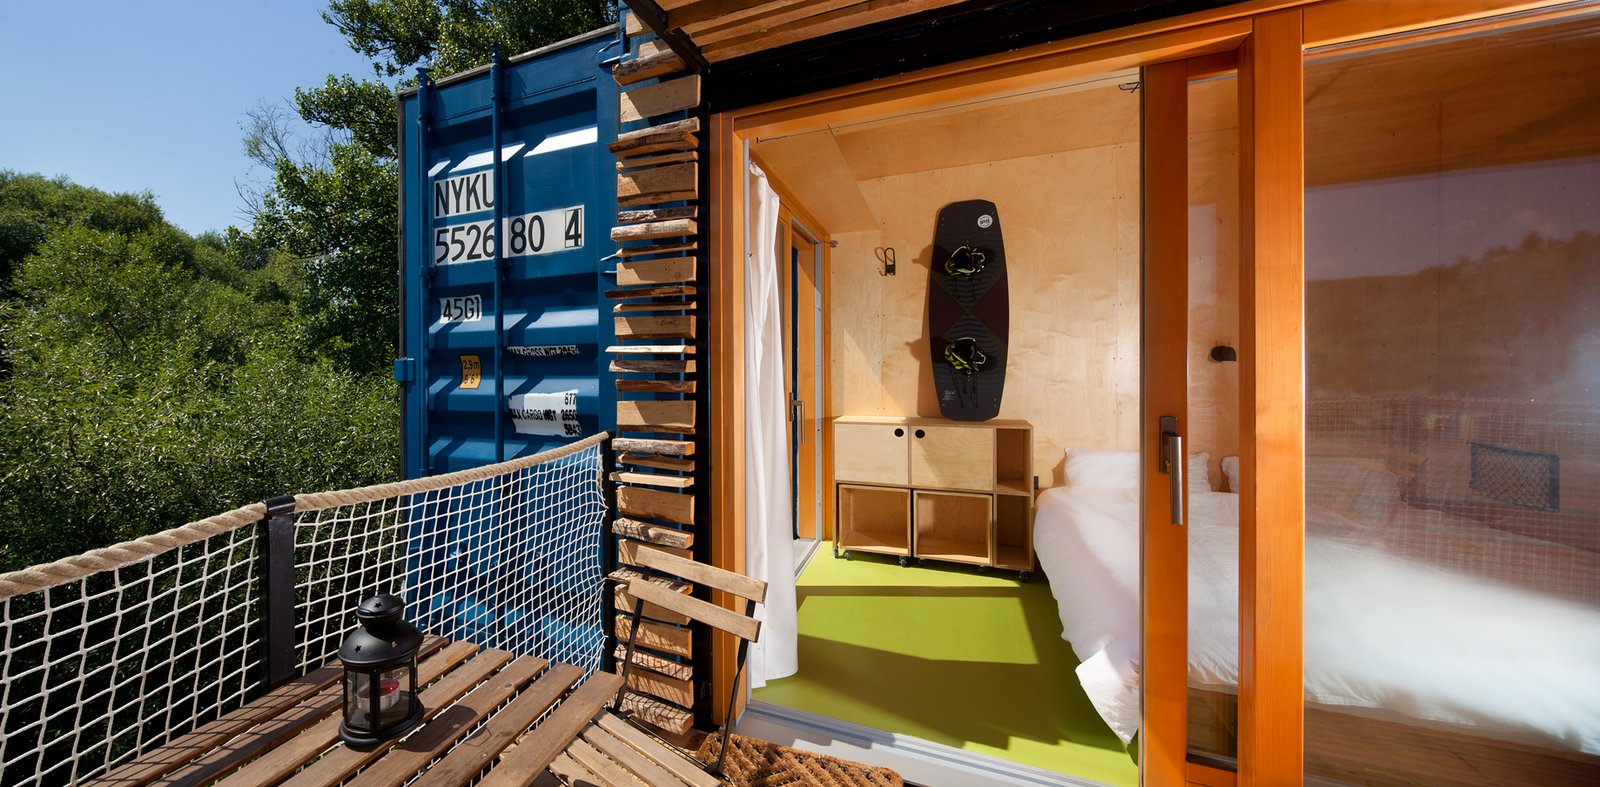 Bed, Night Stands, Storage, Chair, Linoleum Floor, Exterior, Wood Siding Material, and Metal Siding Material  Photo 8 of 15 in A Mobile Boutique Hotel For the Modern Traveler Made From Shipping Containers